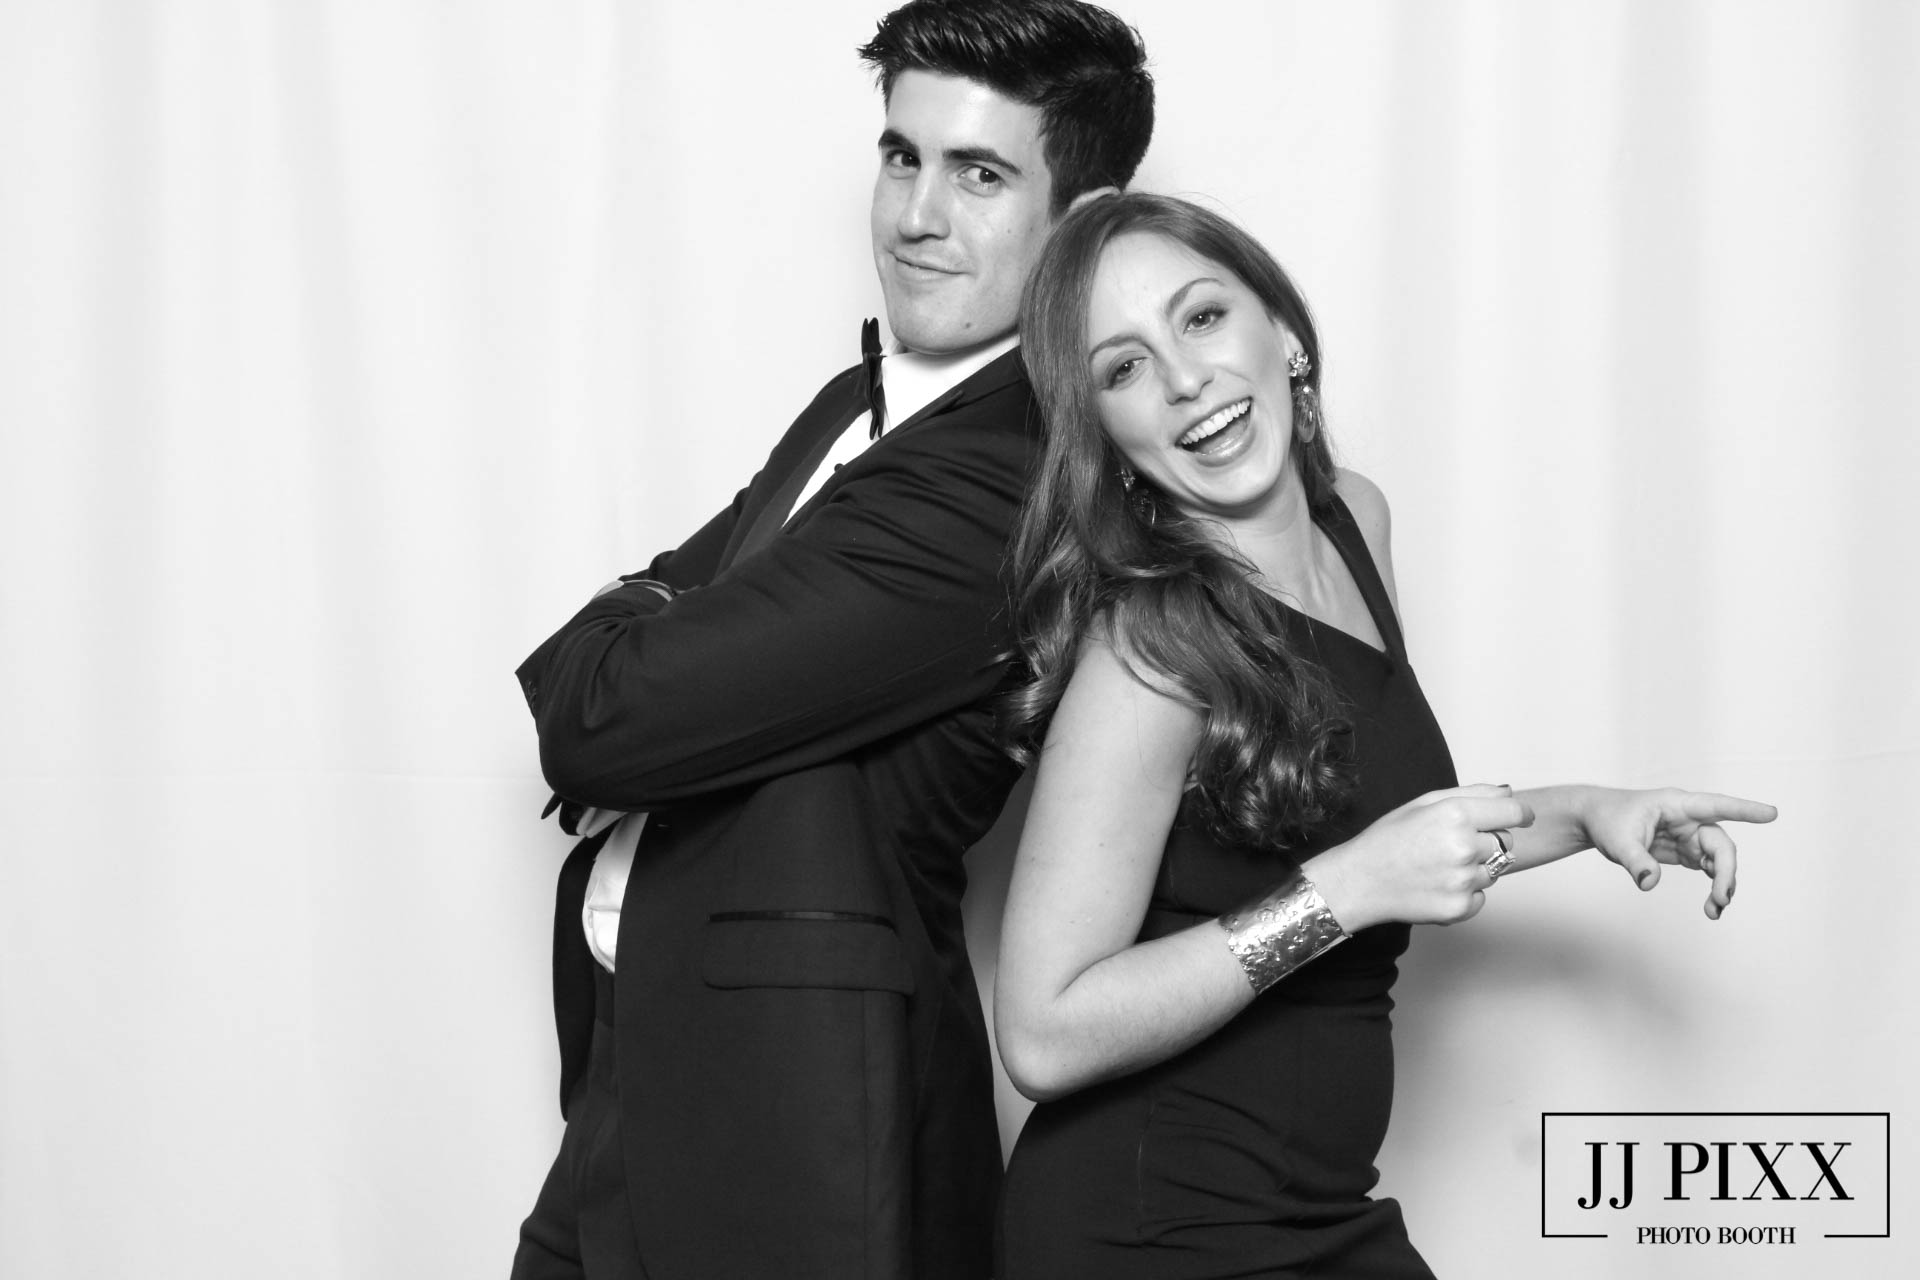 Elisabeth & Daniel Wedding Photo Booth-26.jpg